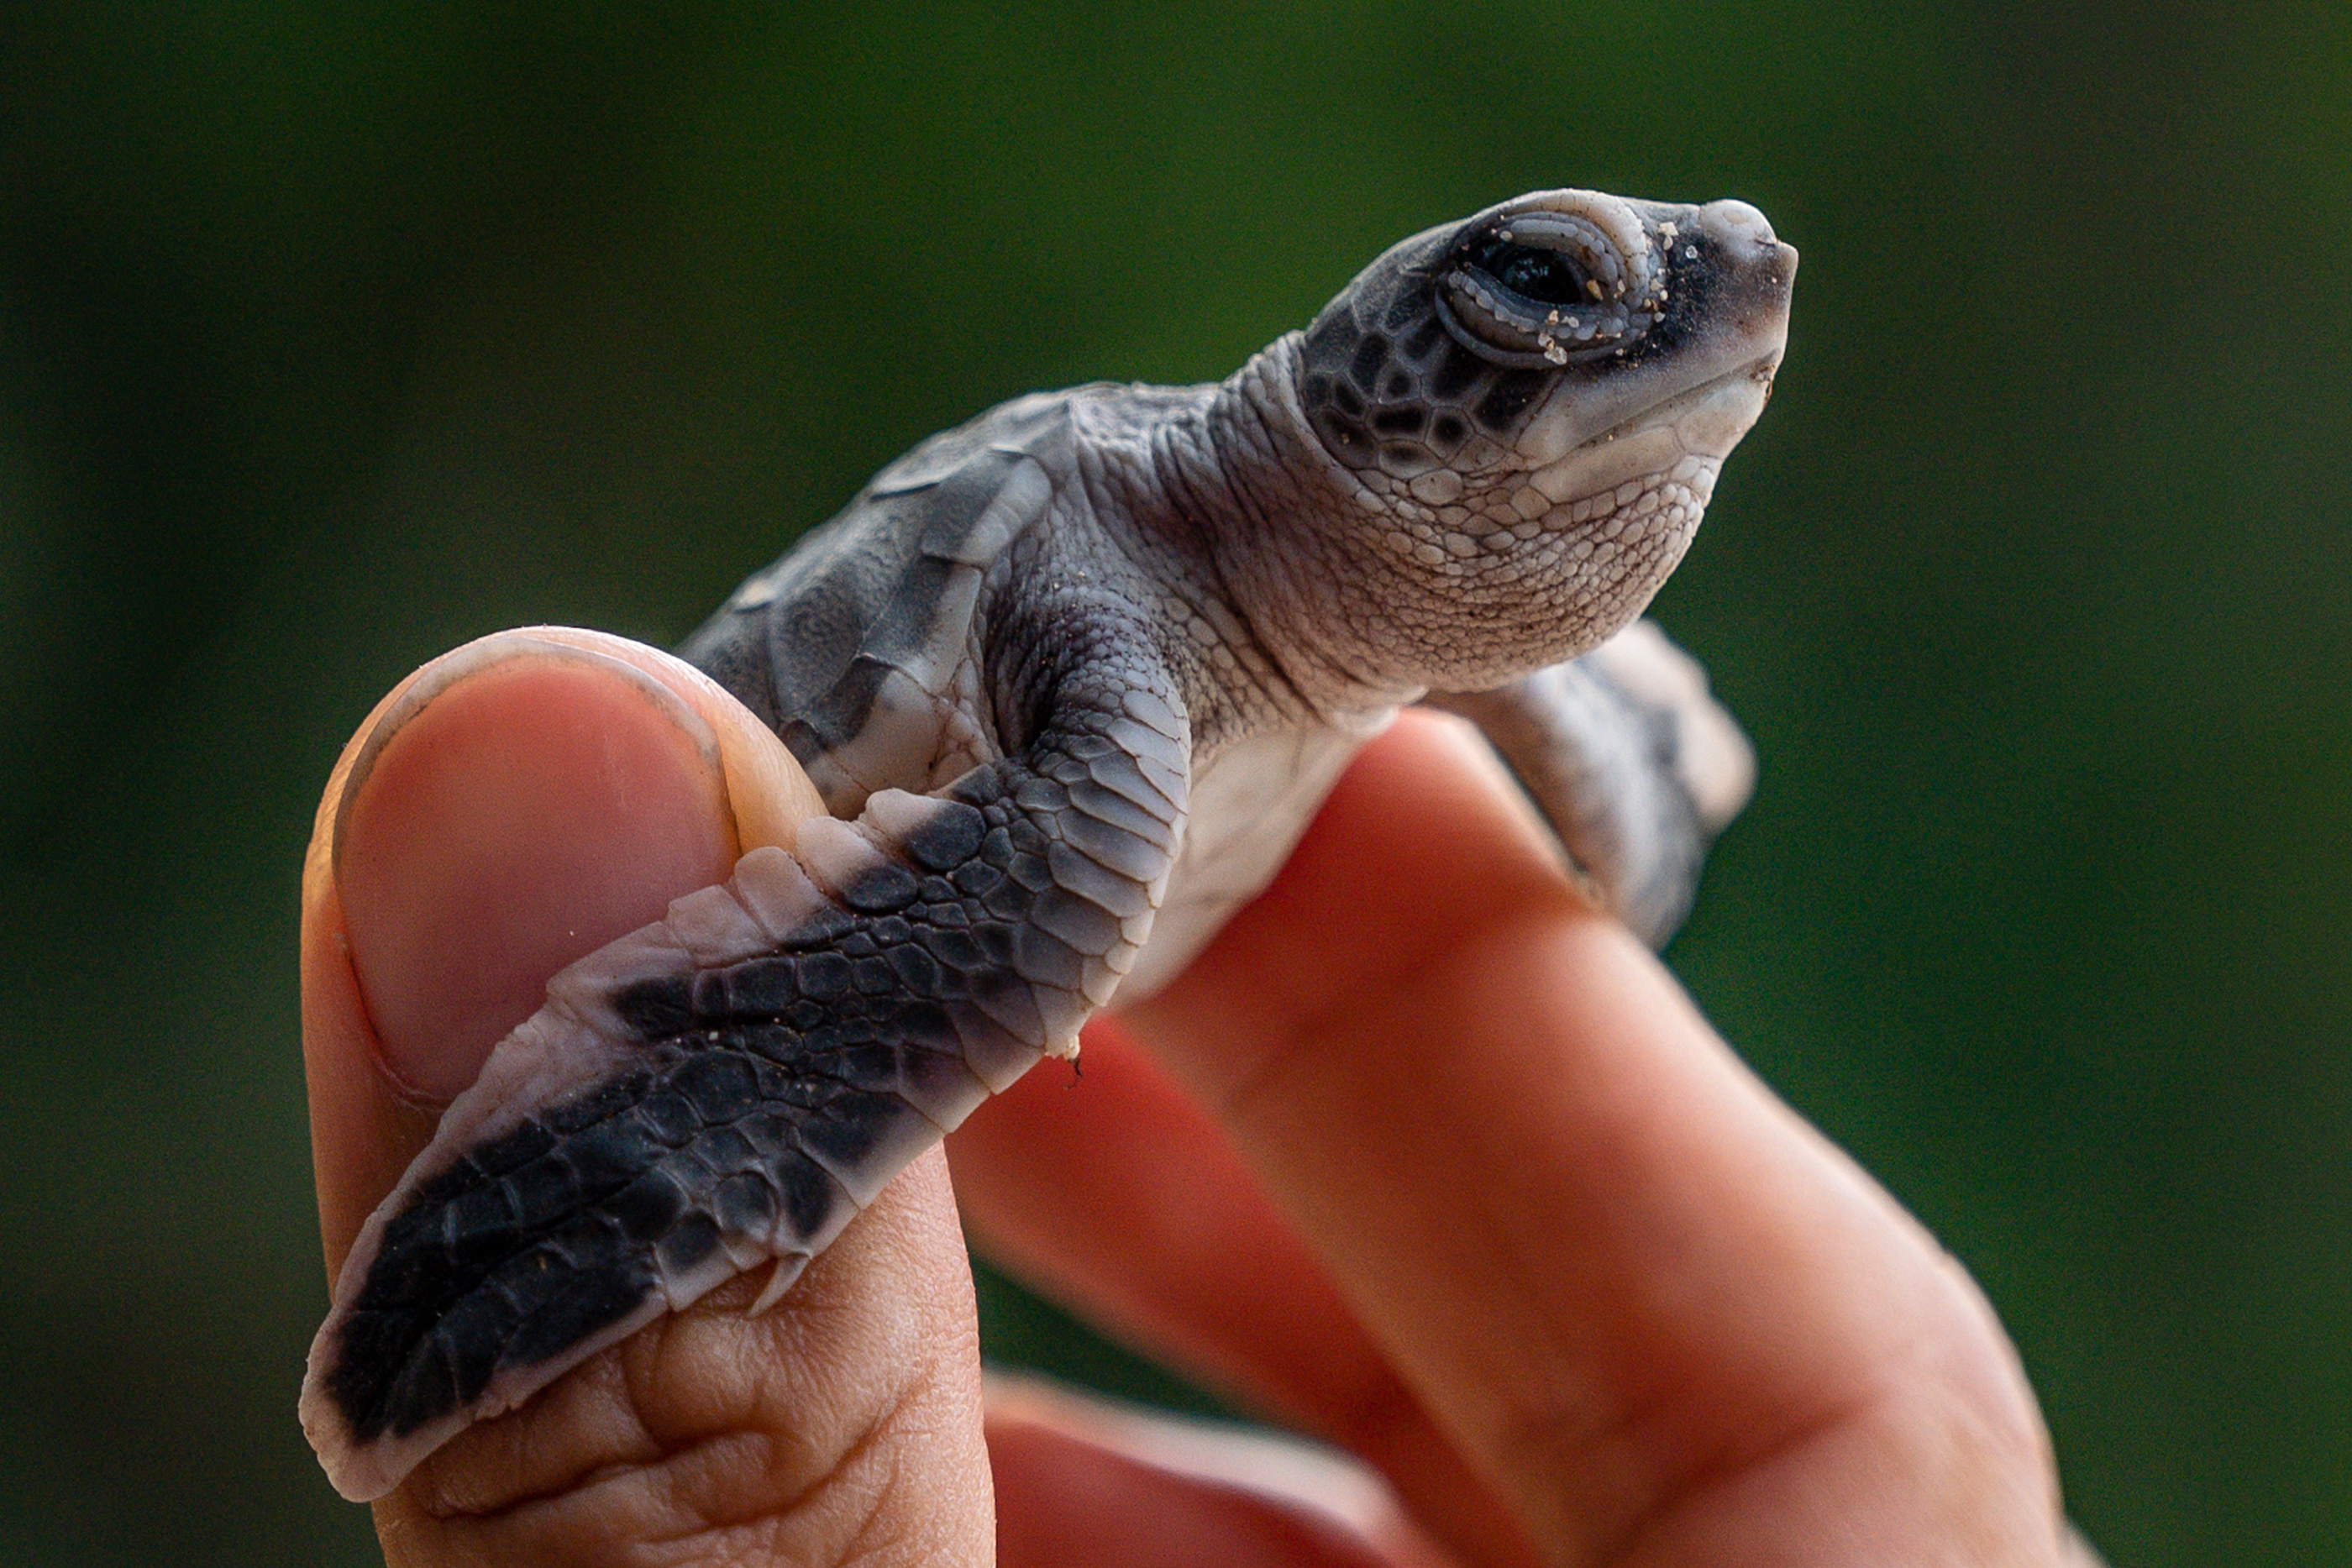 Photo of a baby turtle